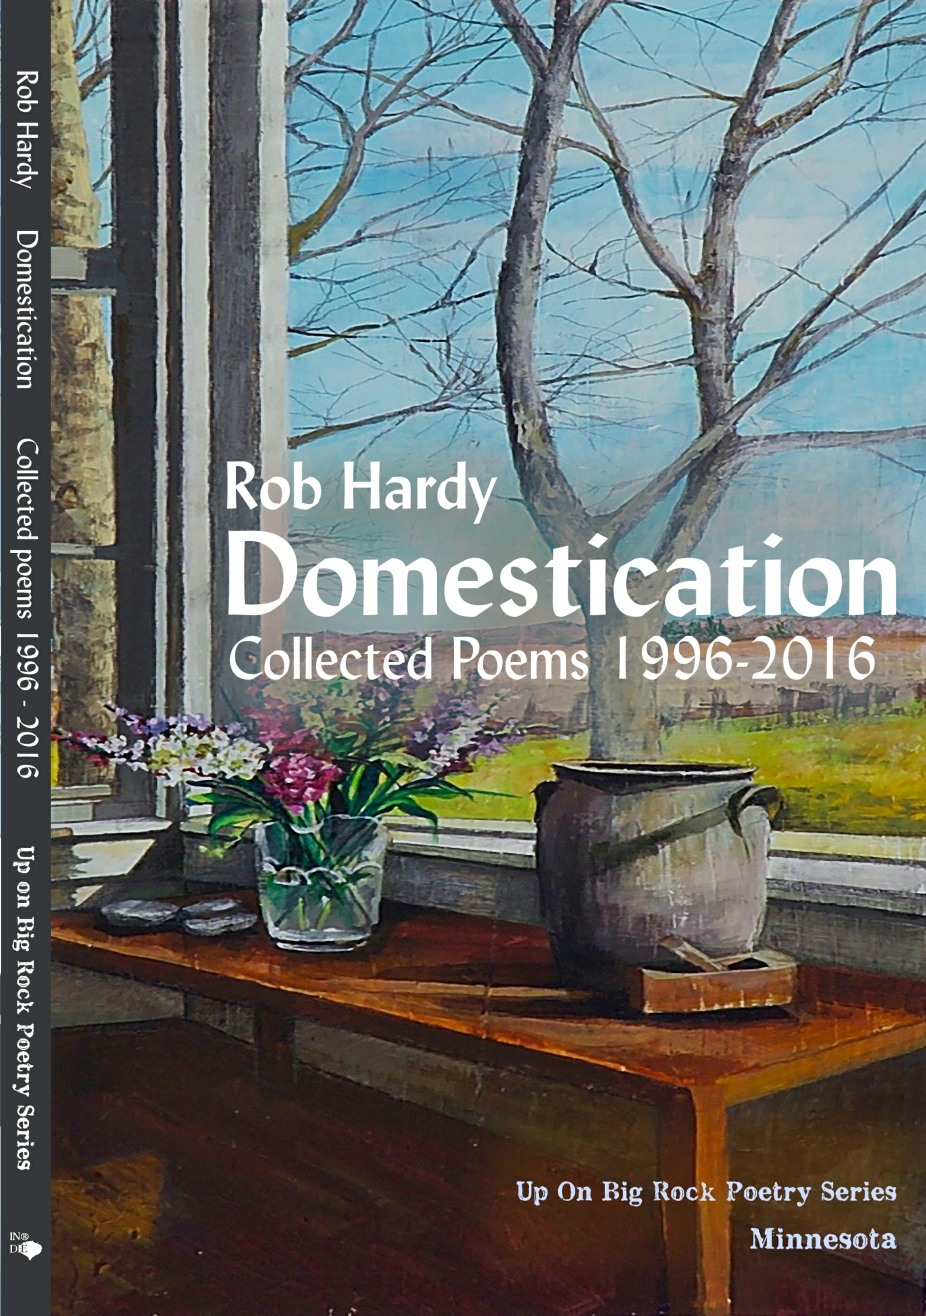 Rob Hardy, Domestication: Collected Poems, 1996-2016